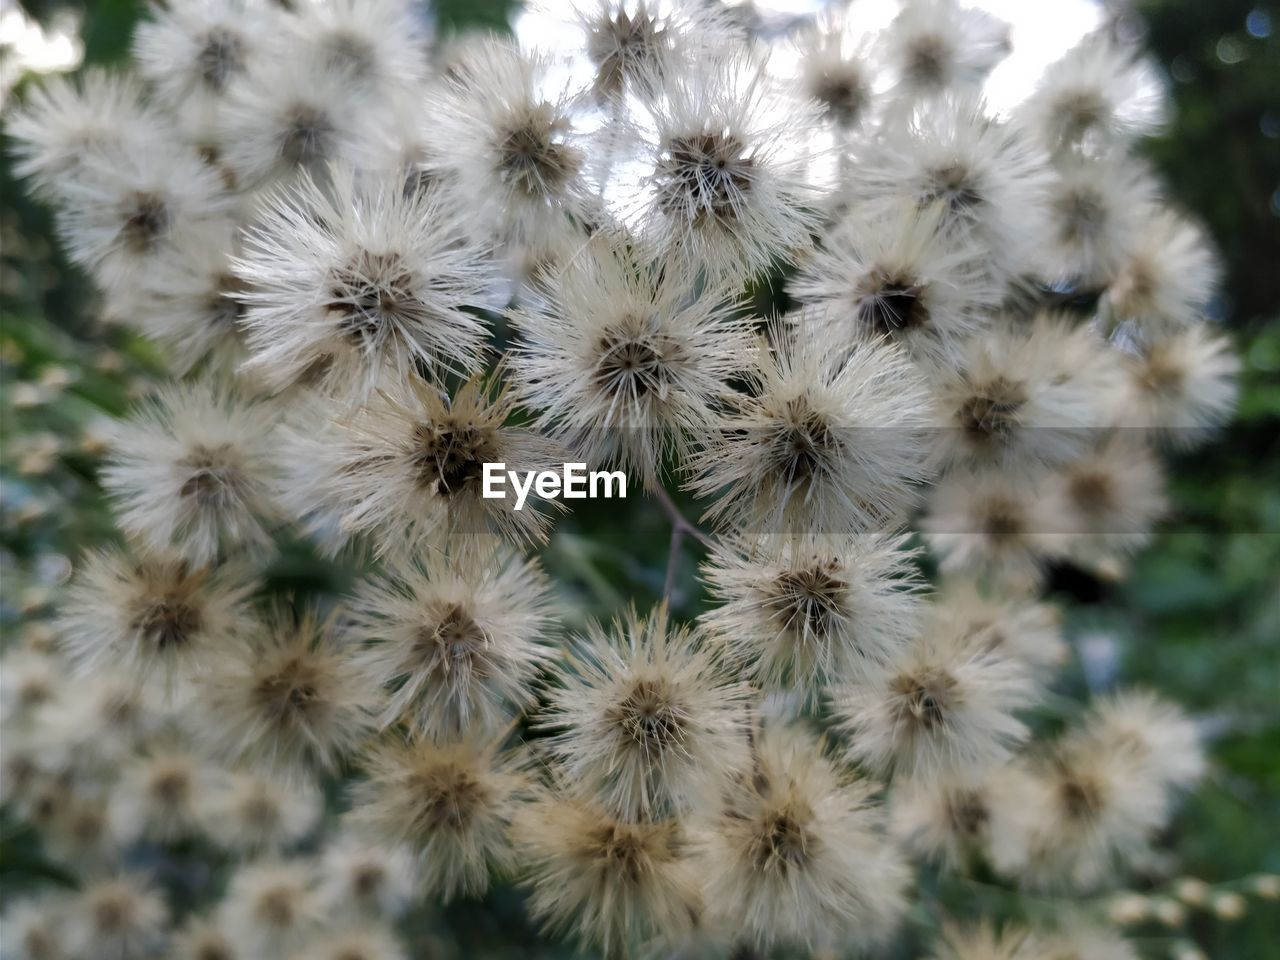 flower, plant, beauty in nature, flowering plant, growth, nature, fragility, close-up, vulnerability, no people, freshness, day, flower head, inflorescence, backgrounds, white color, full frame, cactus, outdoors, botany, dandelion seed